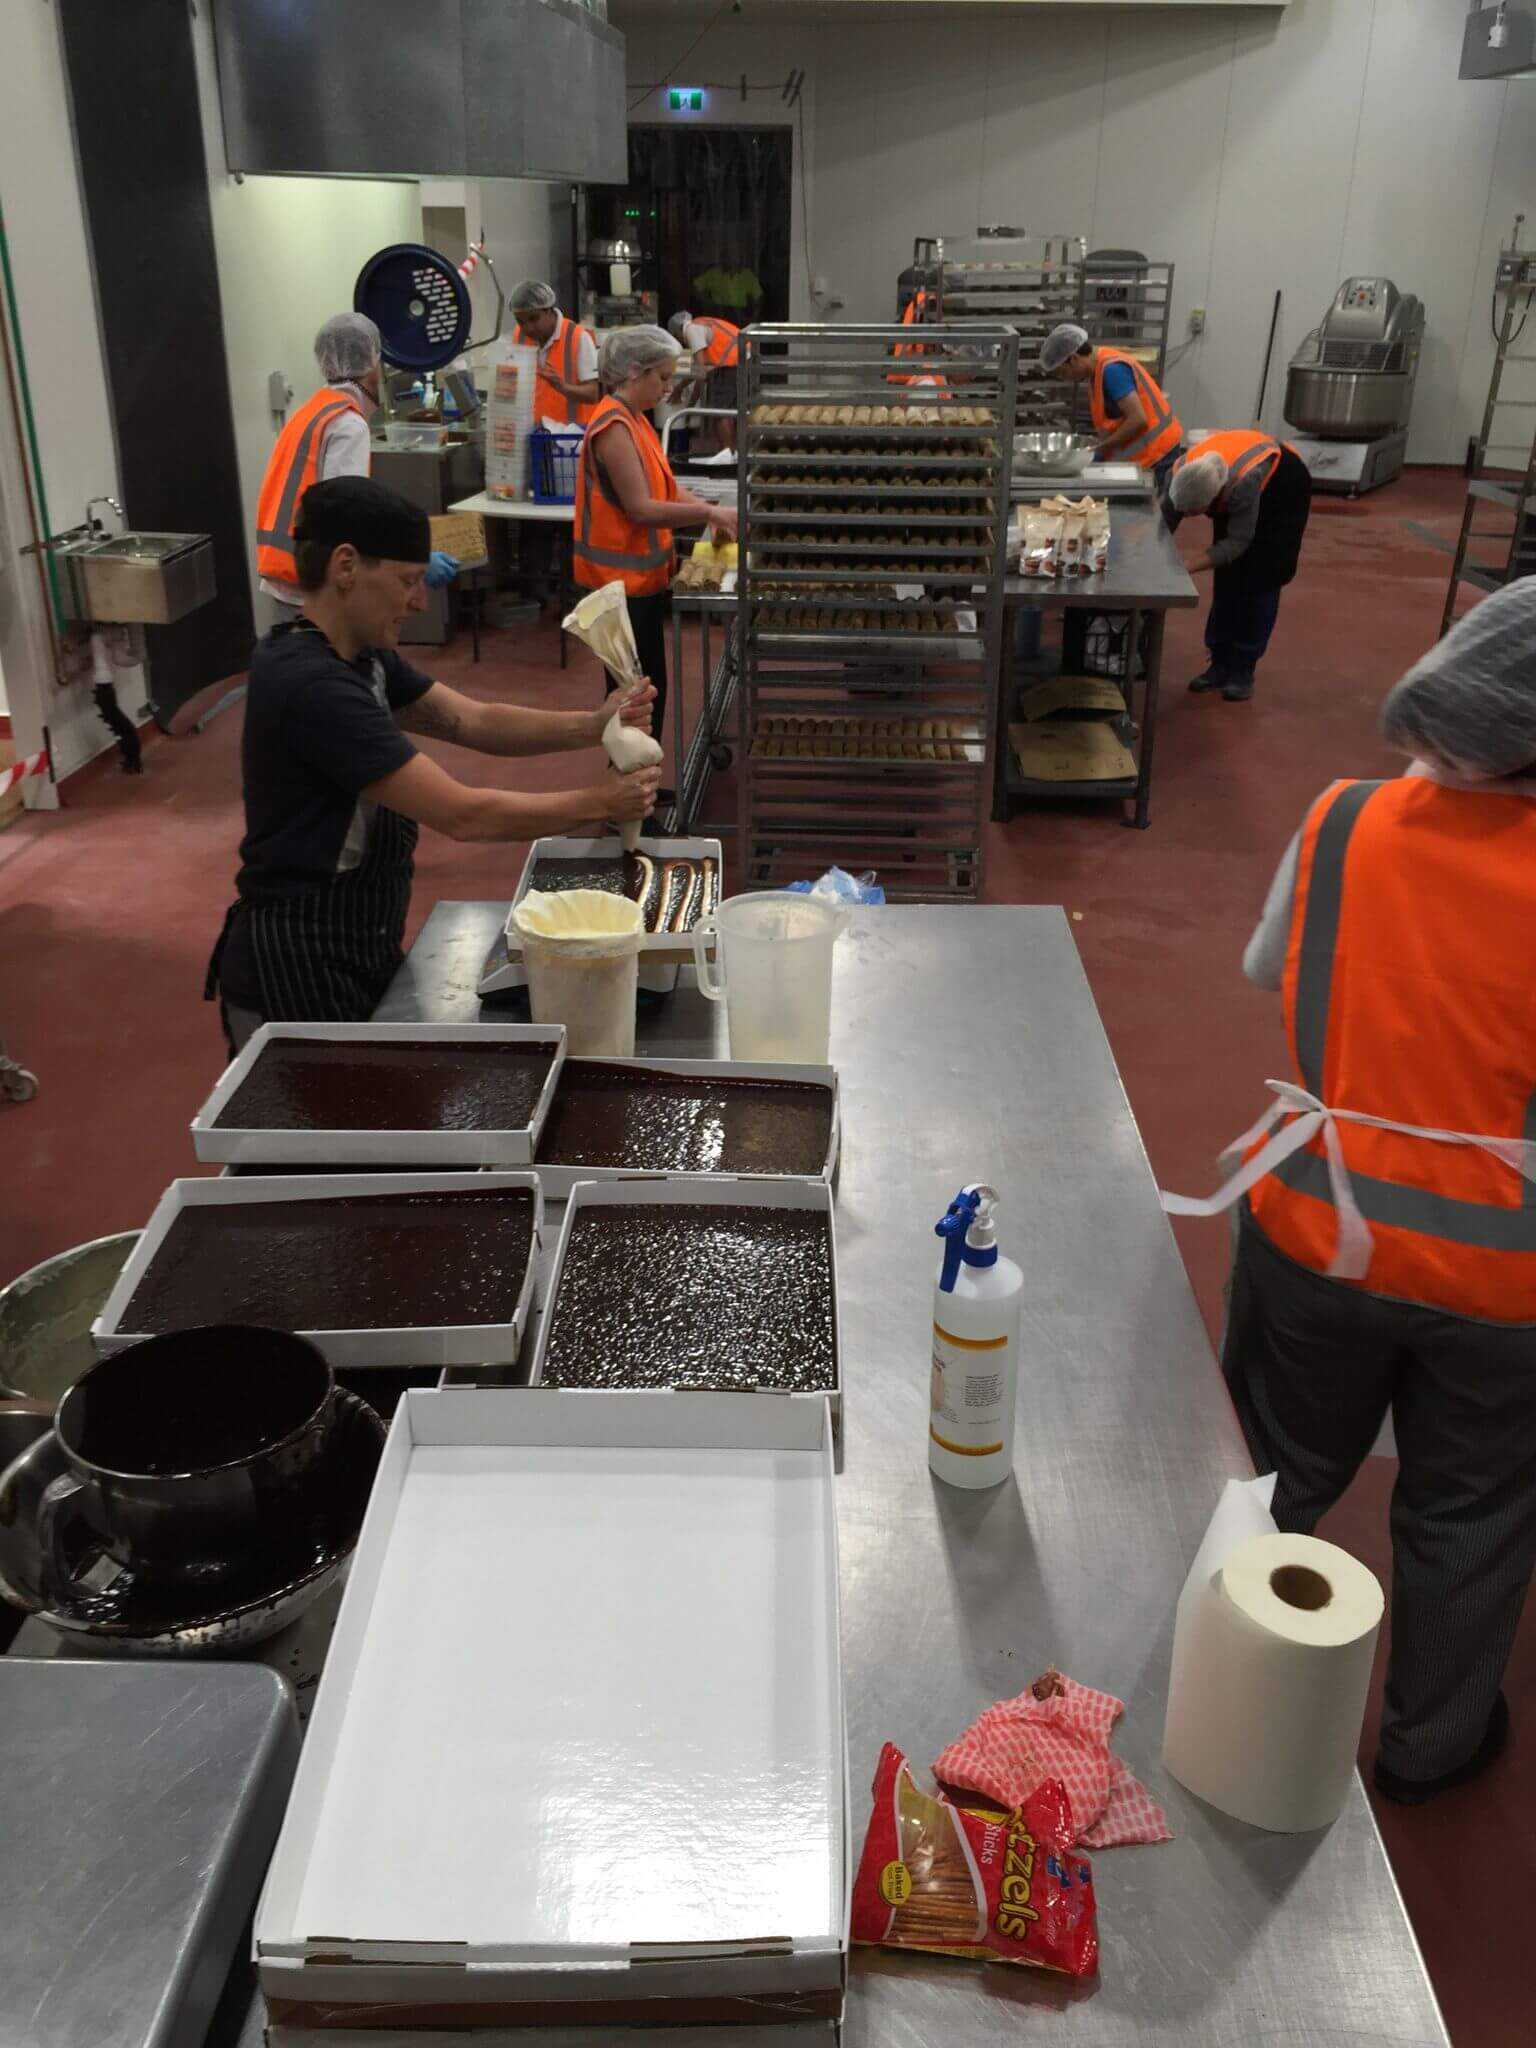 Food Production Facility For Max Brenner - Flooring Solutions - Remedial Building Services